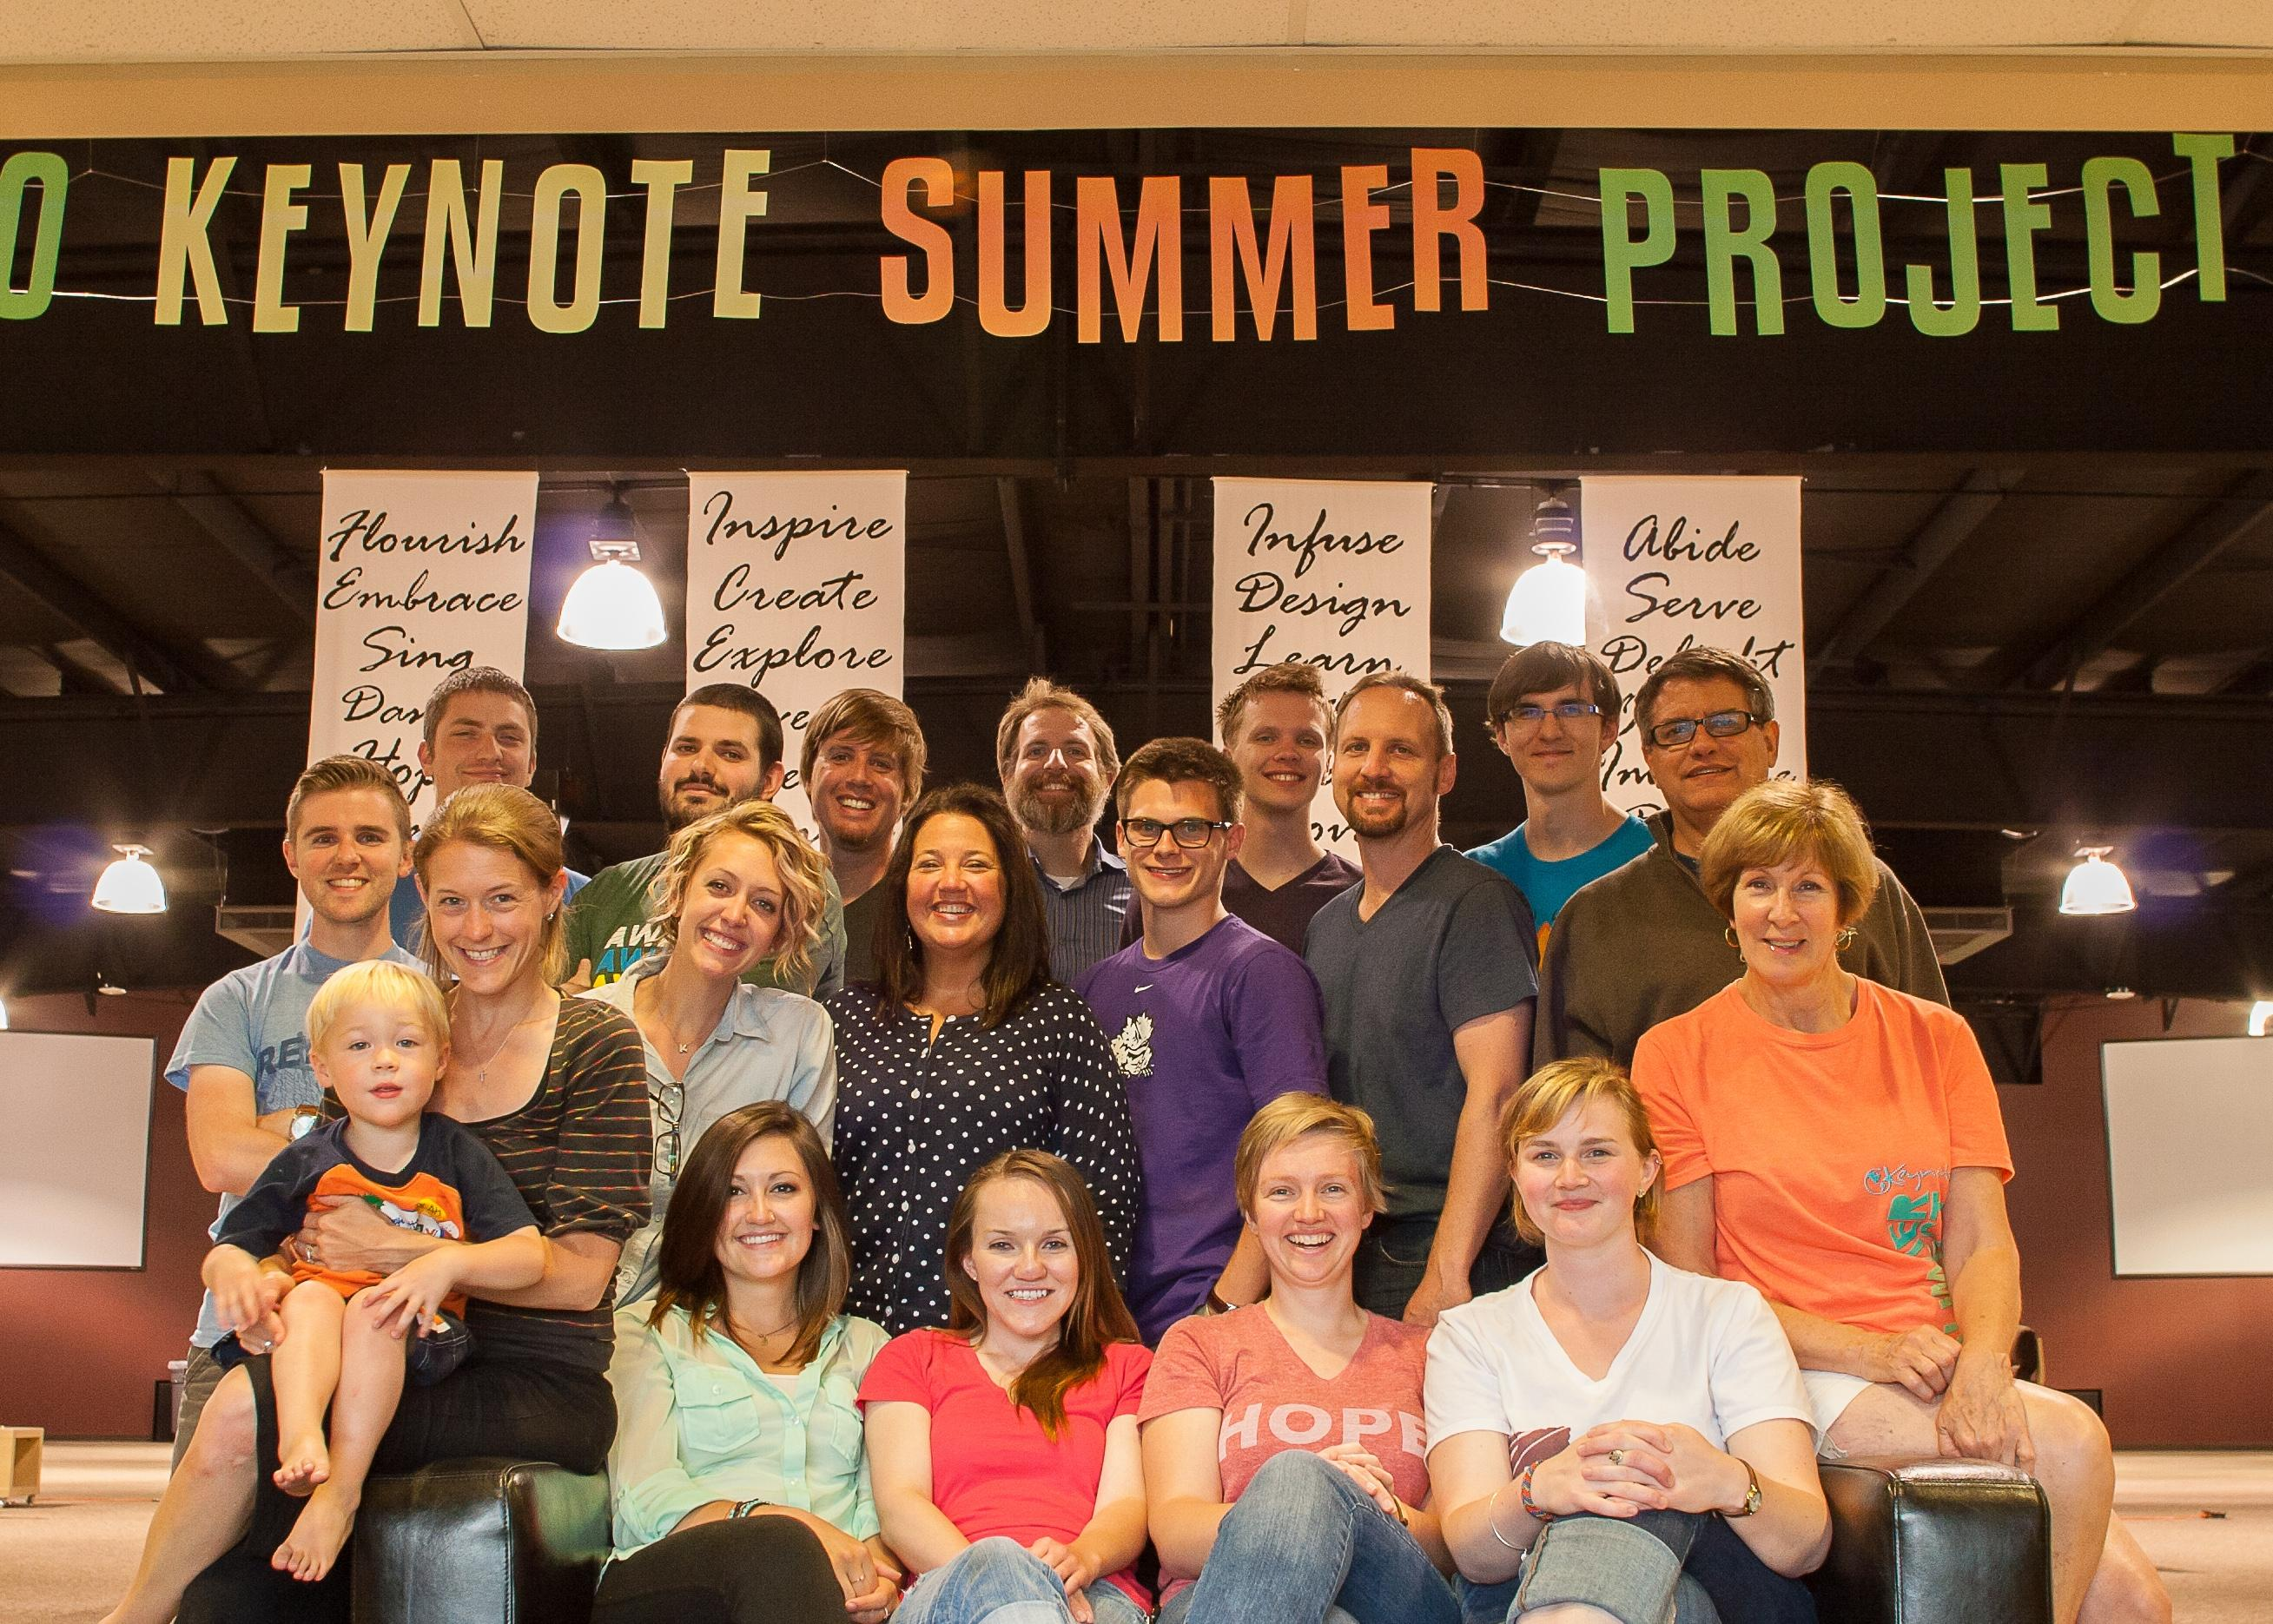 The 2014 Keynote Summer Project